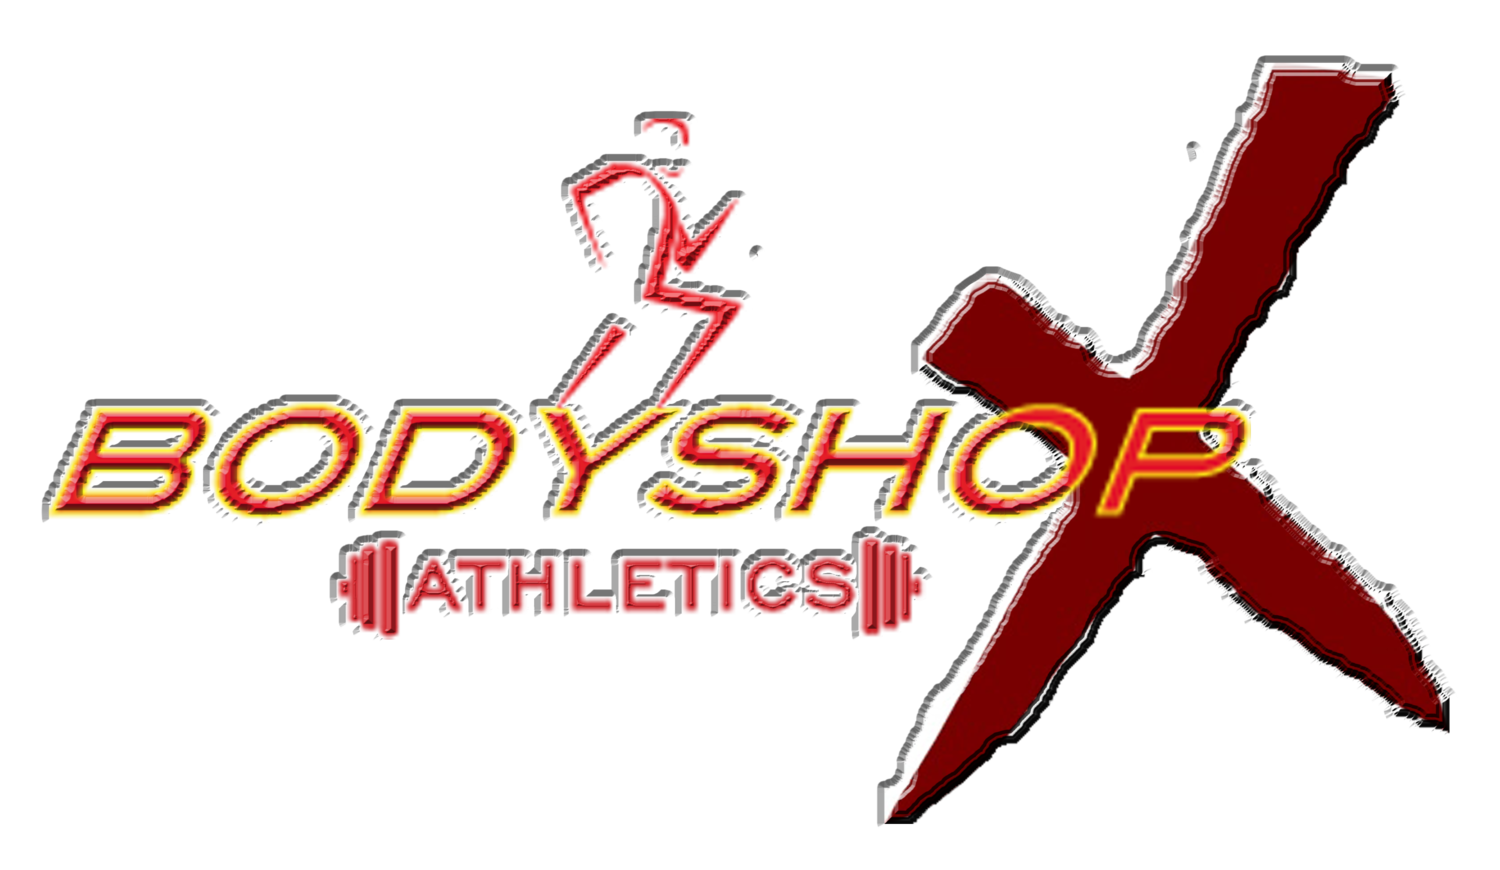 Bodyshop Athletics X